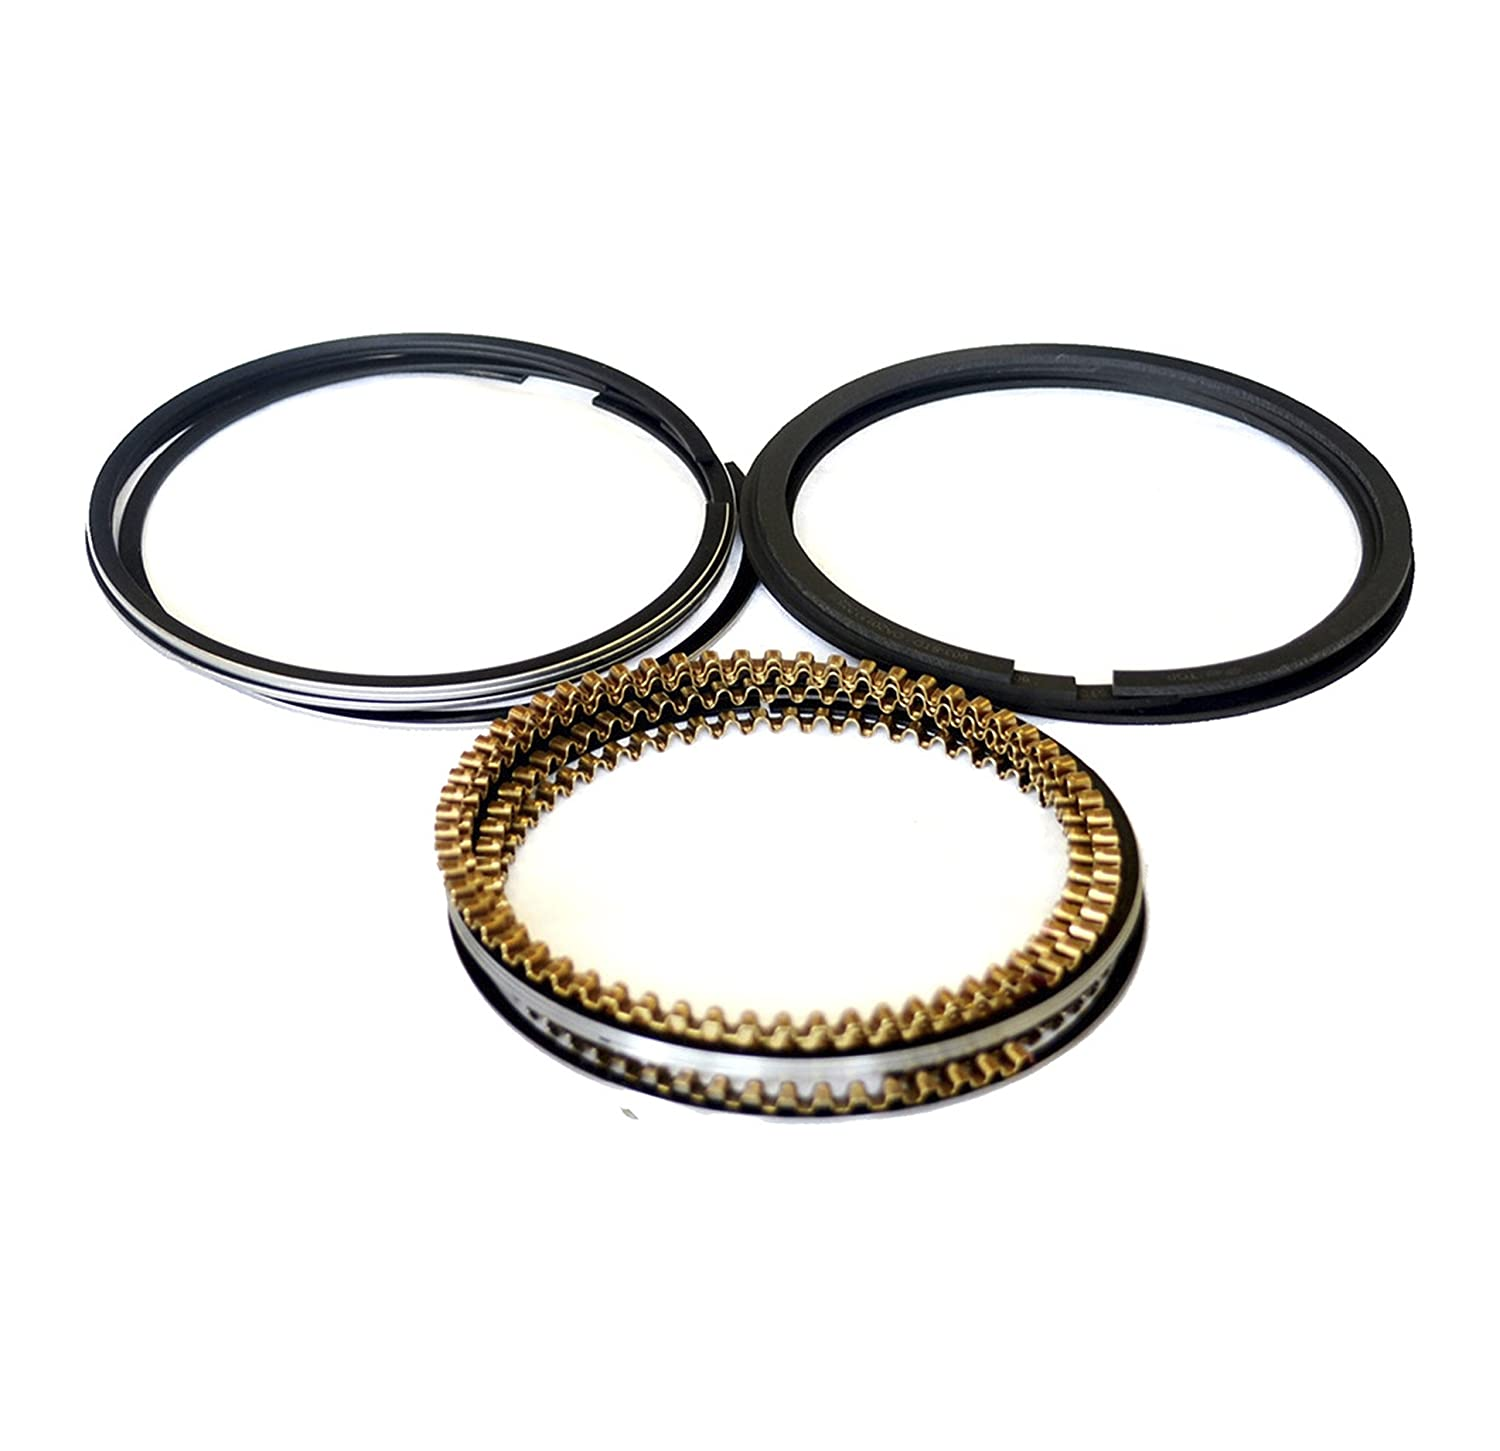 Diamond Power Piston Rings works with Ford Mercury Mazda Explorer Ranger Sport 04-10v 4.0 L - SIZE STD